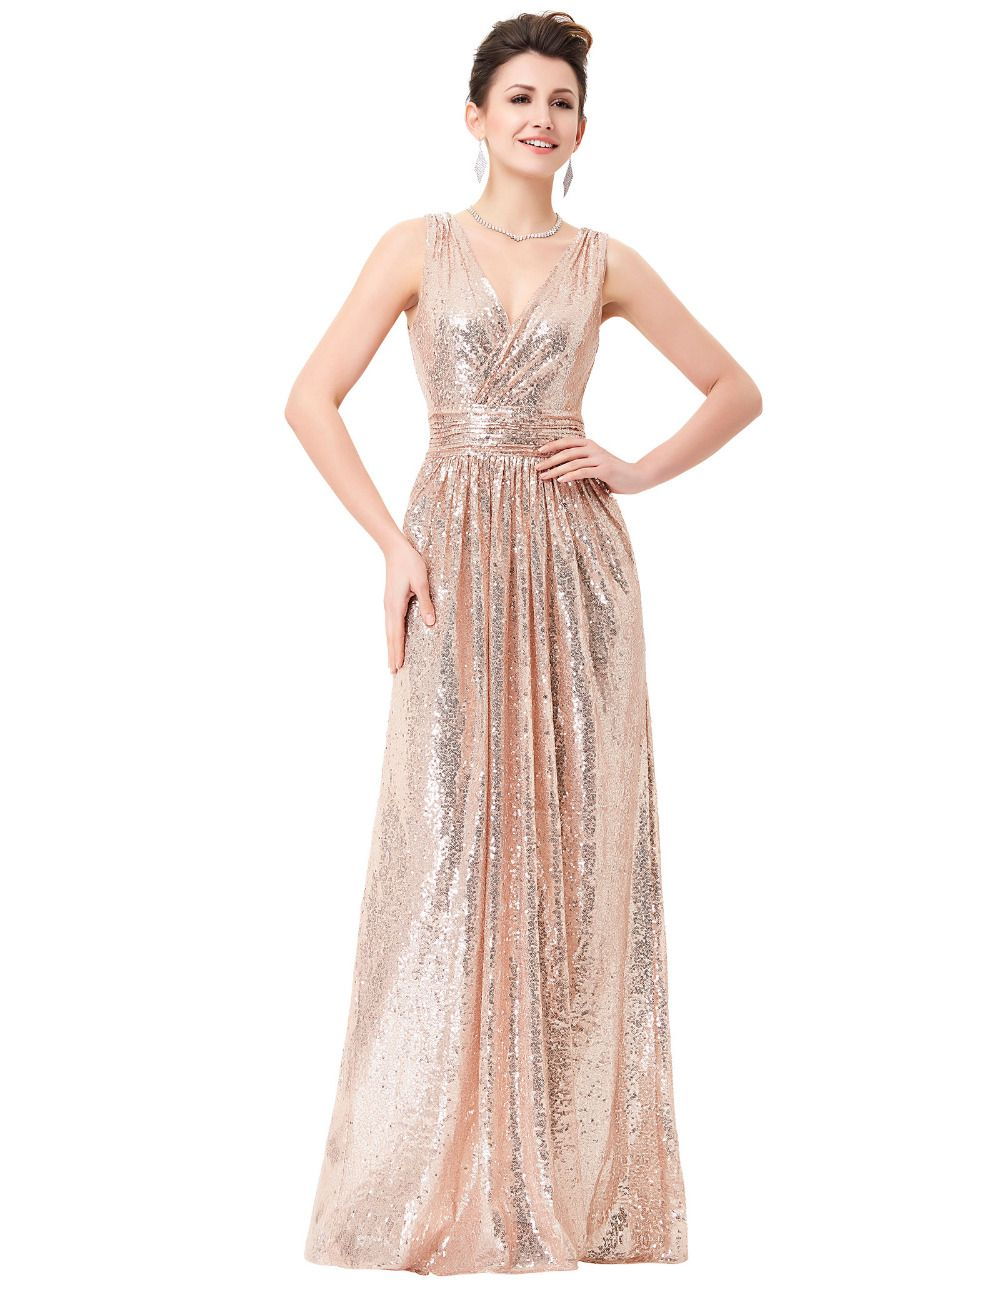 6e1cceb54838d Popular Silver Cocktail Dress-Buy Cheap Silver Cocktail Dress lots ...